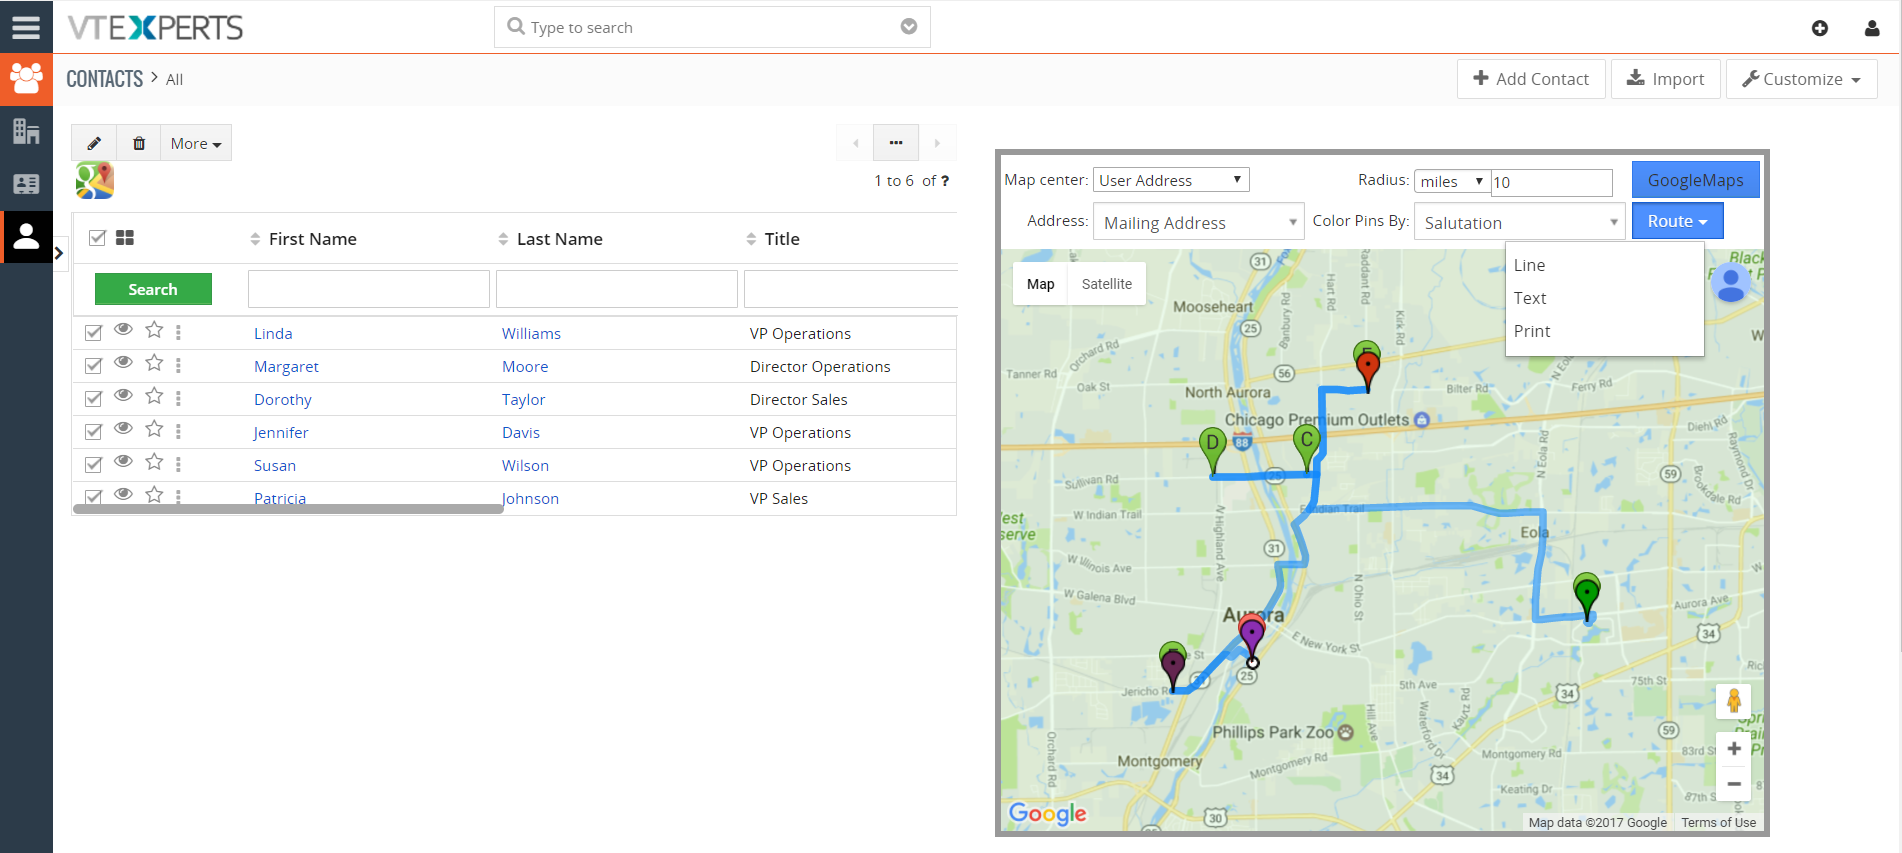 vtiger 7 google maps and route integration route f